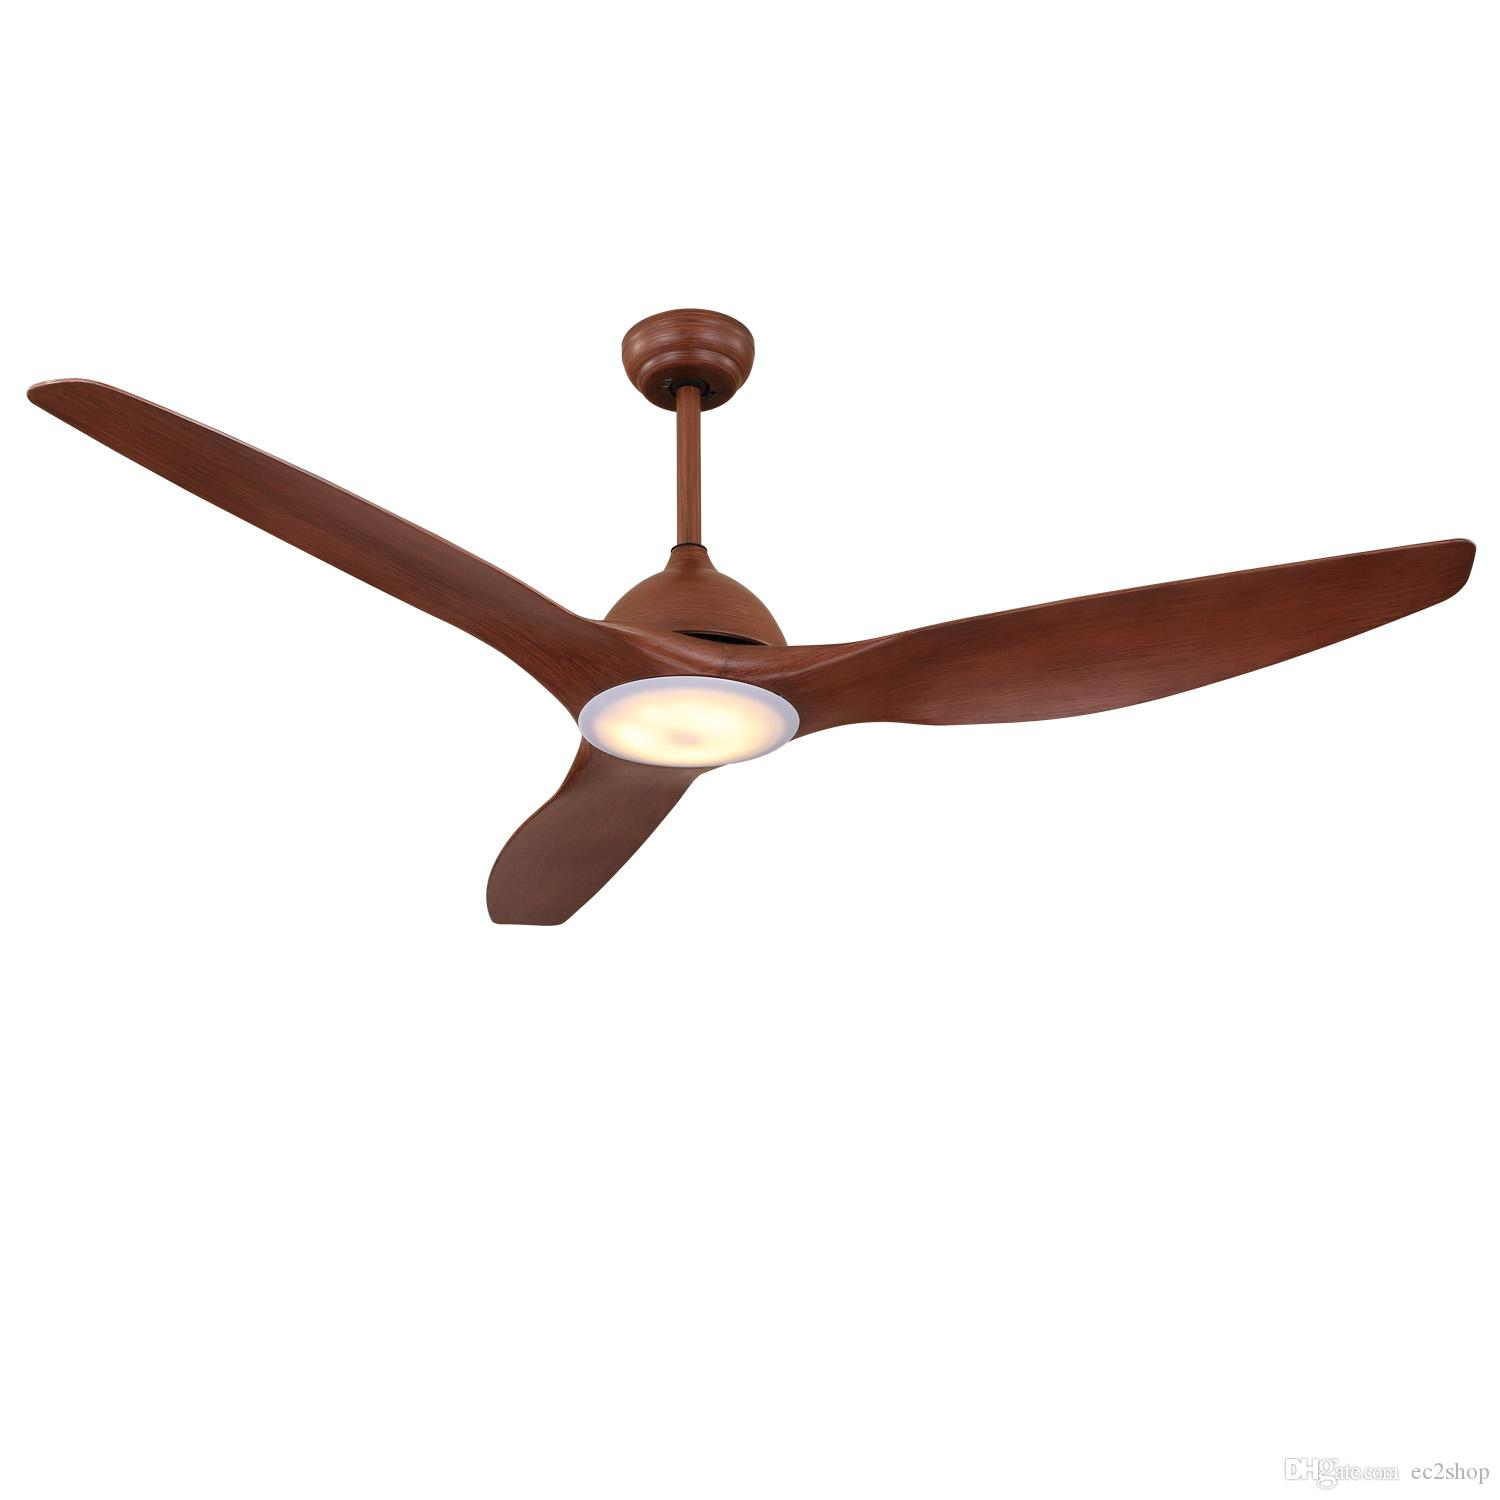 cf emart sale xp fan havells ceiling sp product